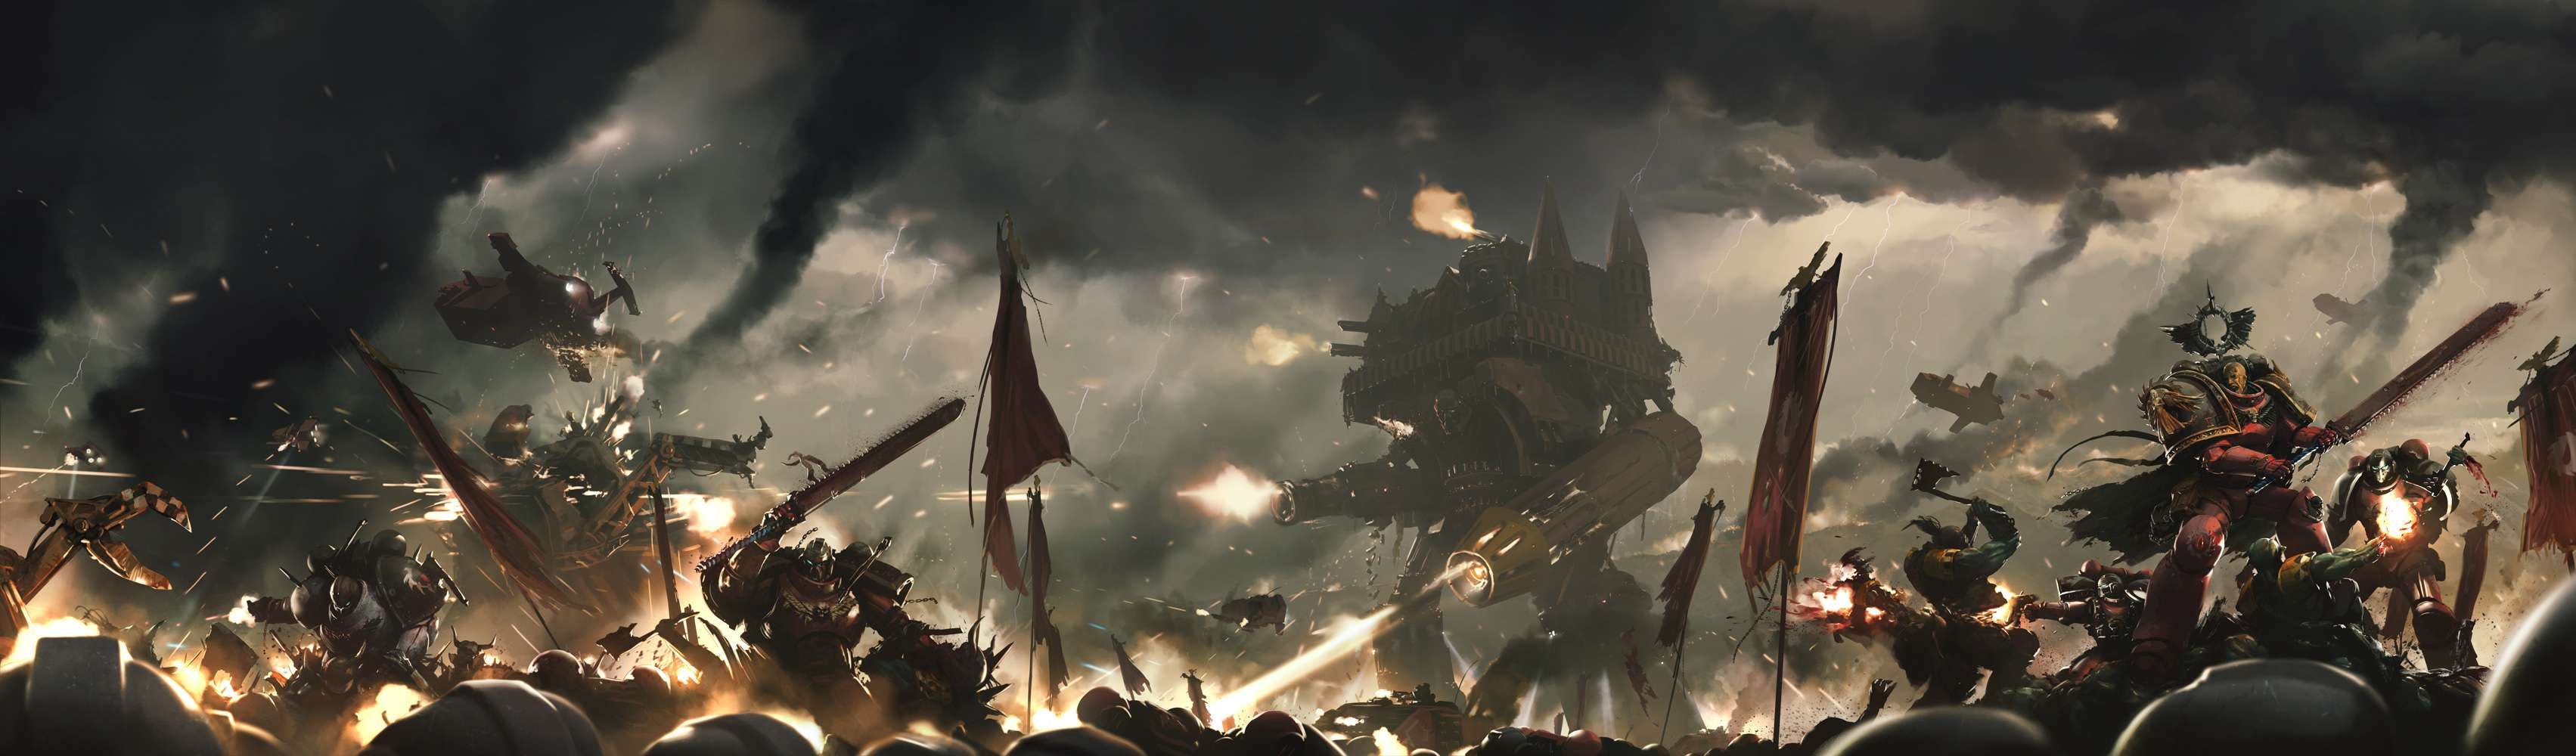 [W40K] Collection d'images : Warhammer 40K divers et inclassables - Page 2 9bf26c10